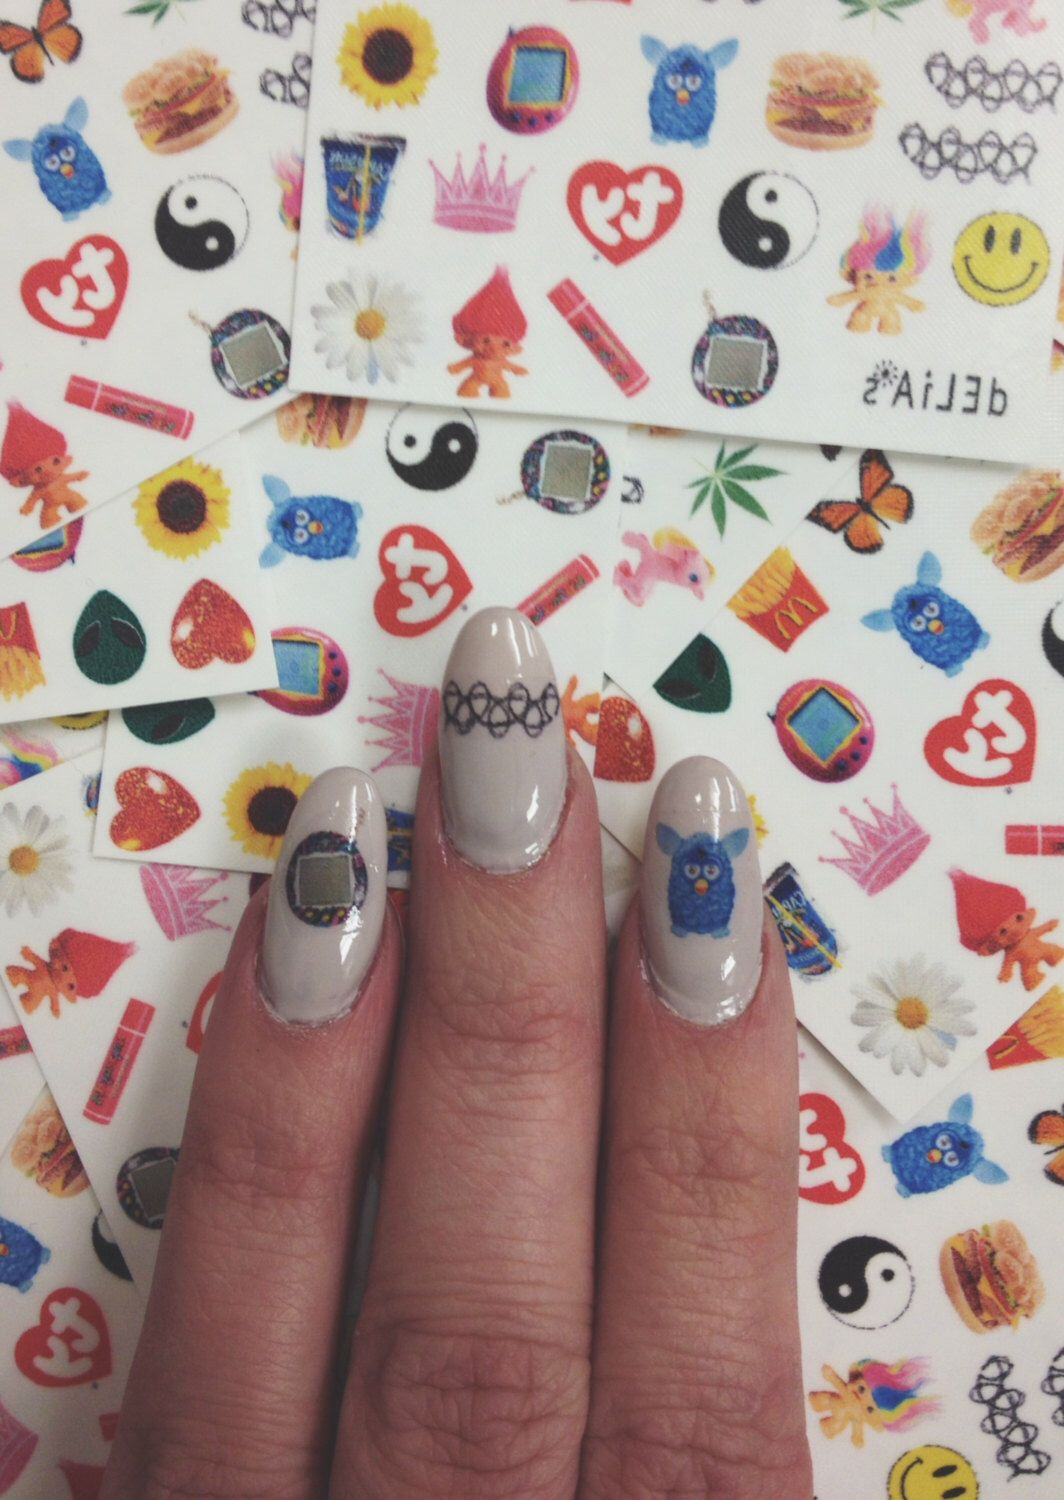 I LOVE THE 90s nail decals - set of 22 nail decals by shopTRIXXIE on ...